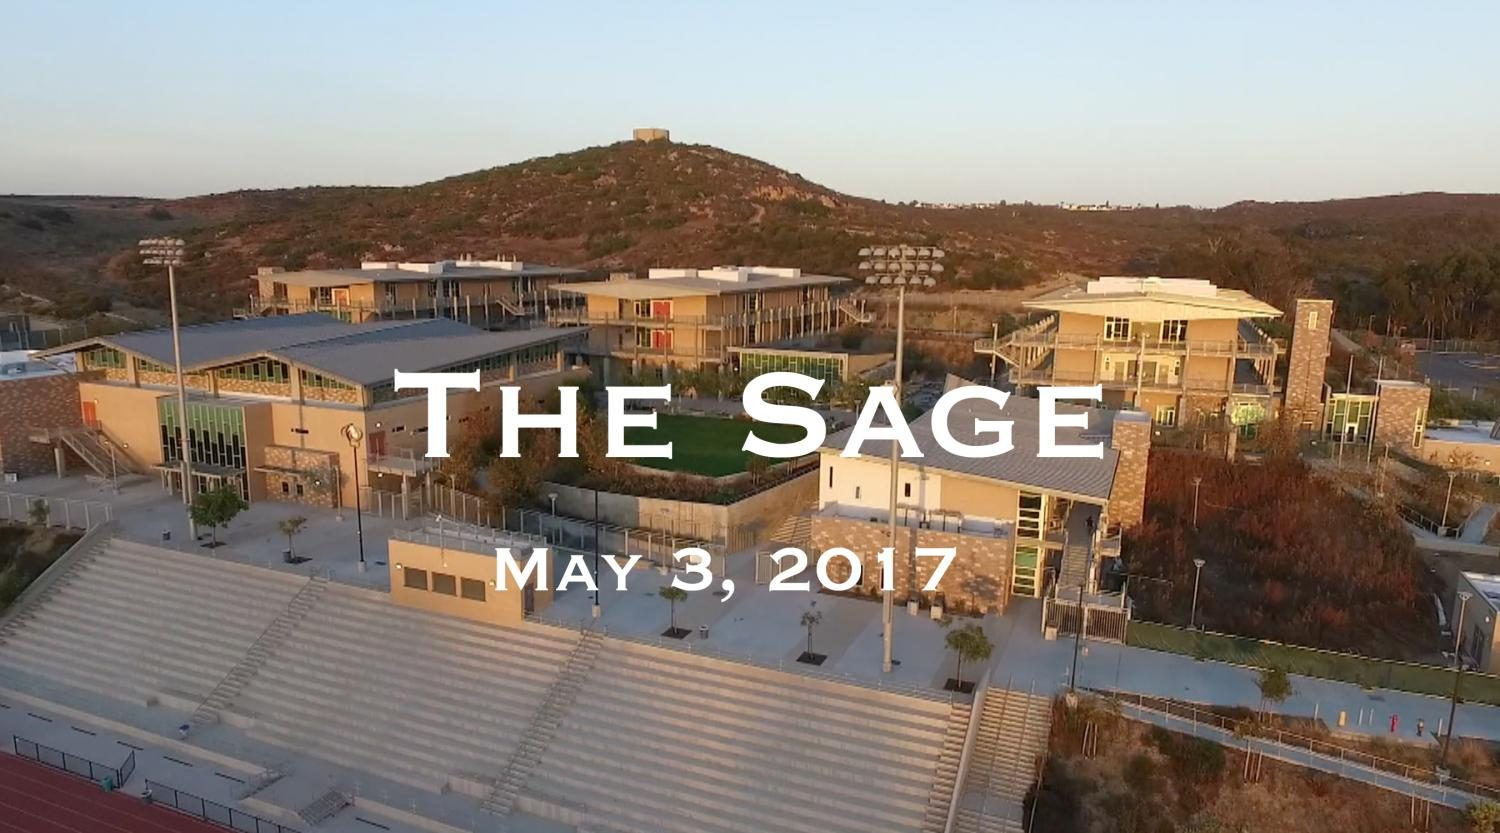 The+Sage%3A+May+3%2C+2017